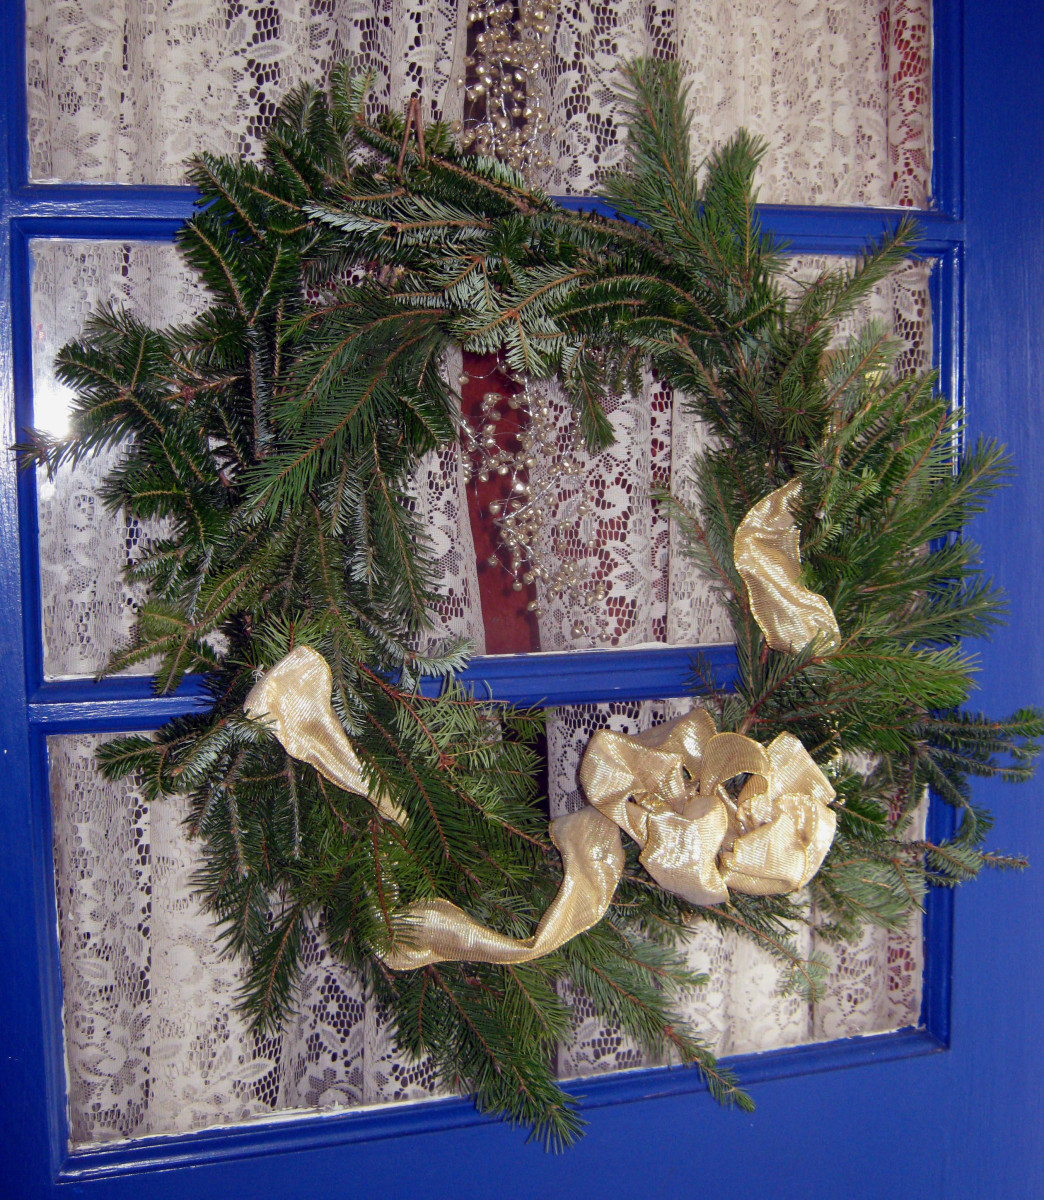 How to Make an Evergreen Christmas Wreath